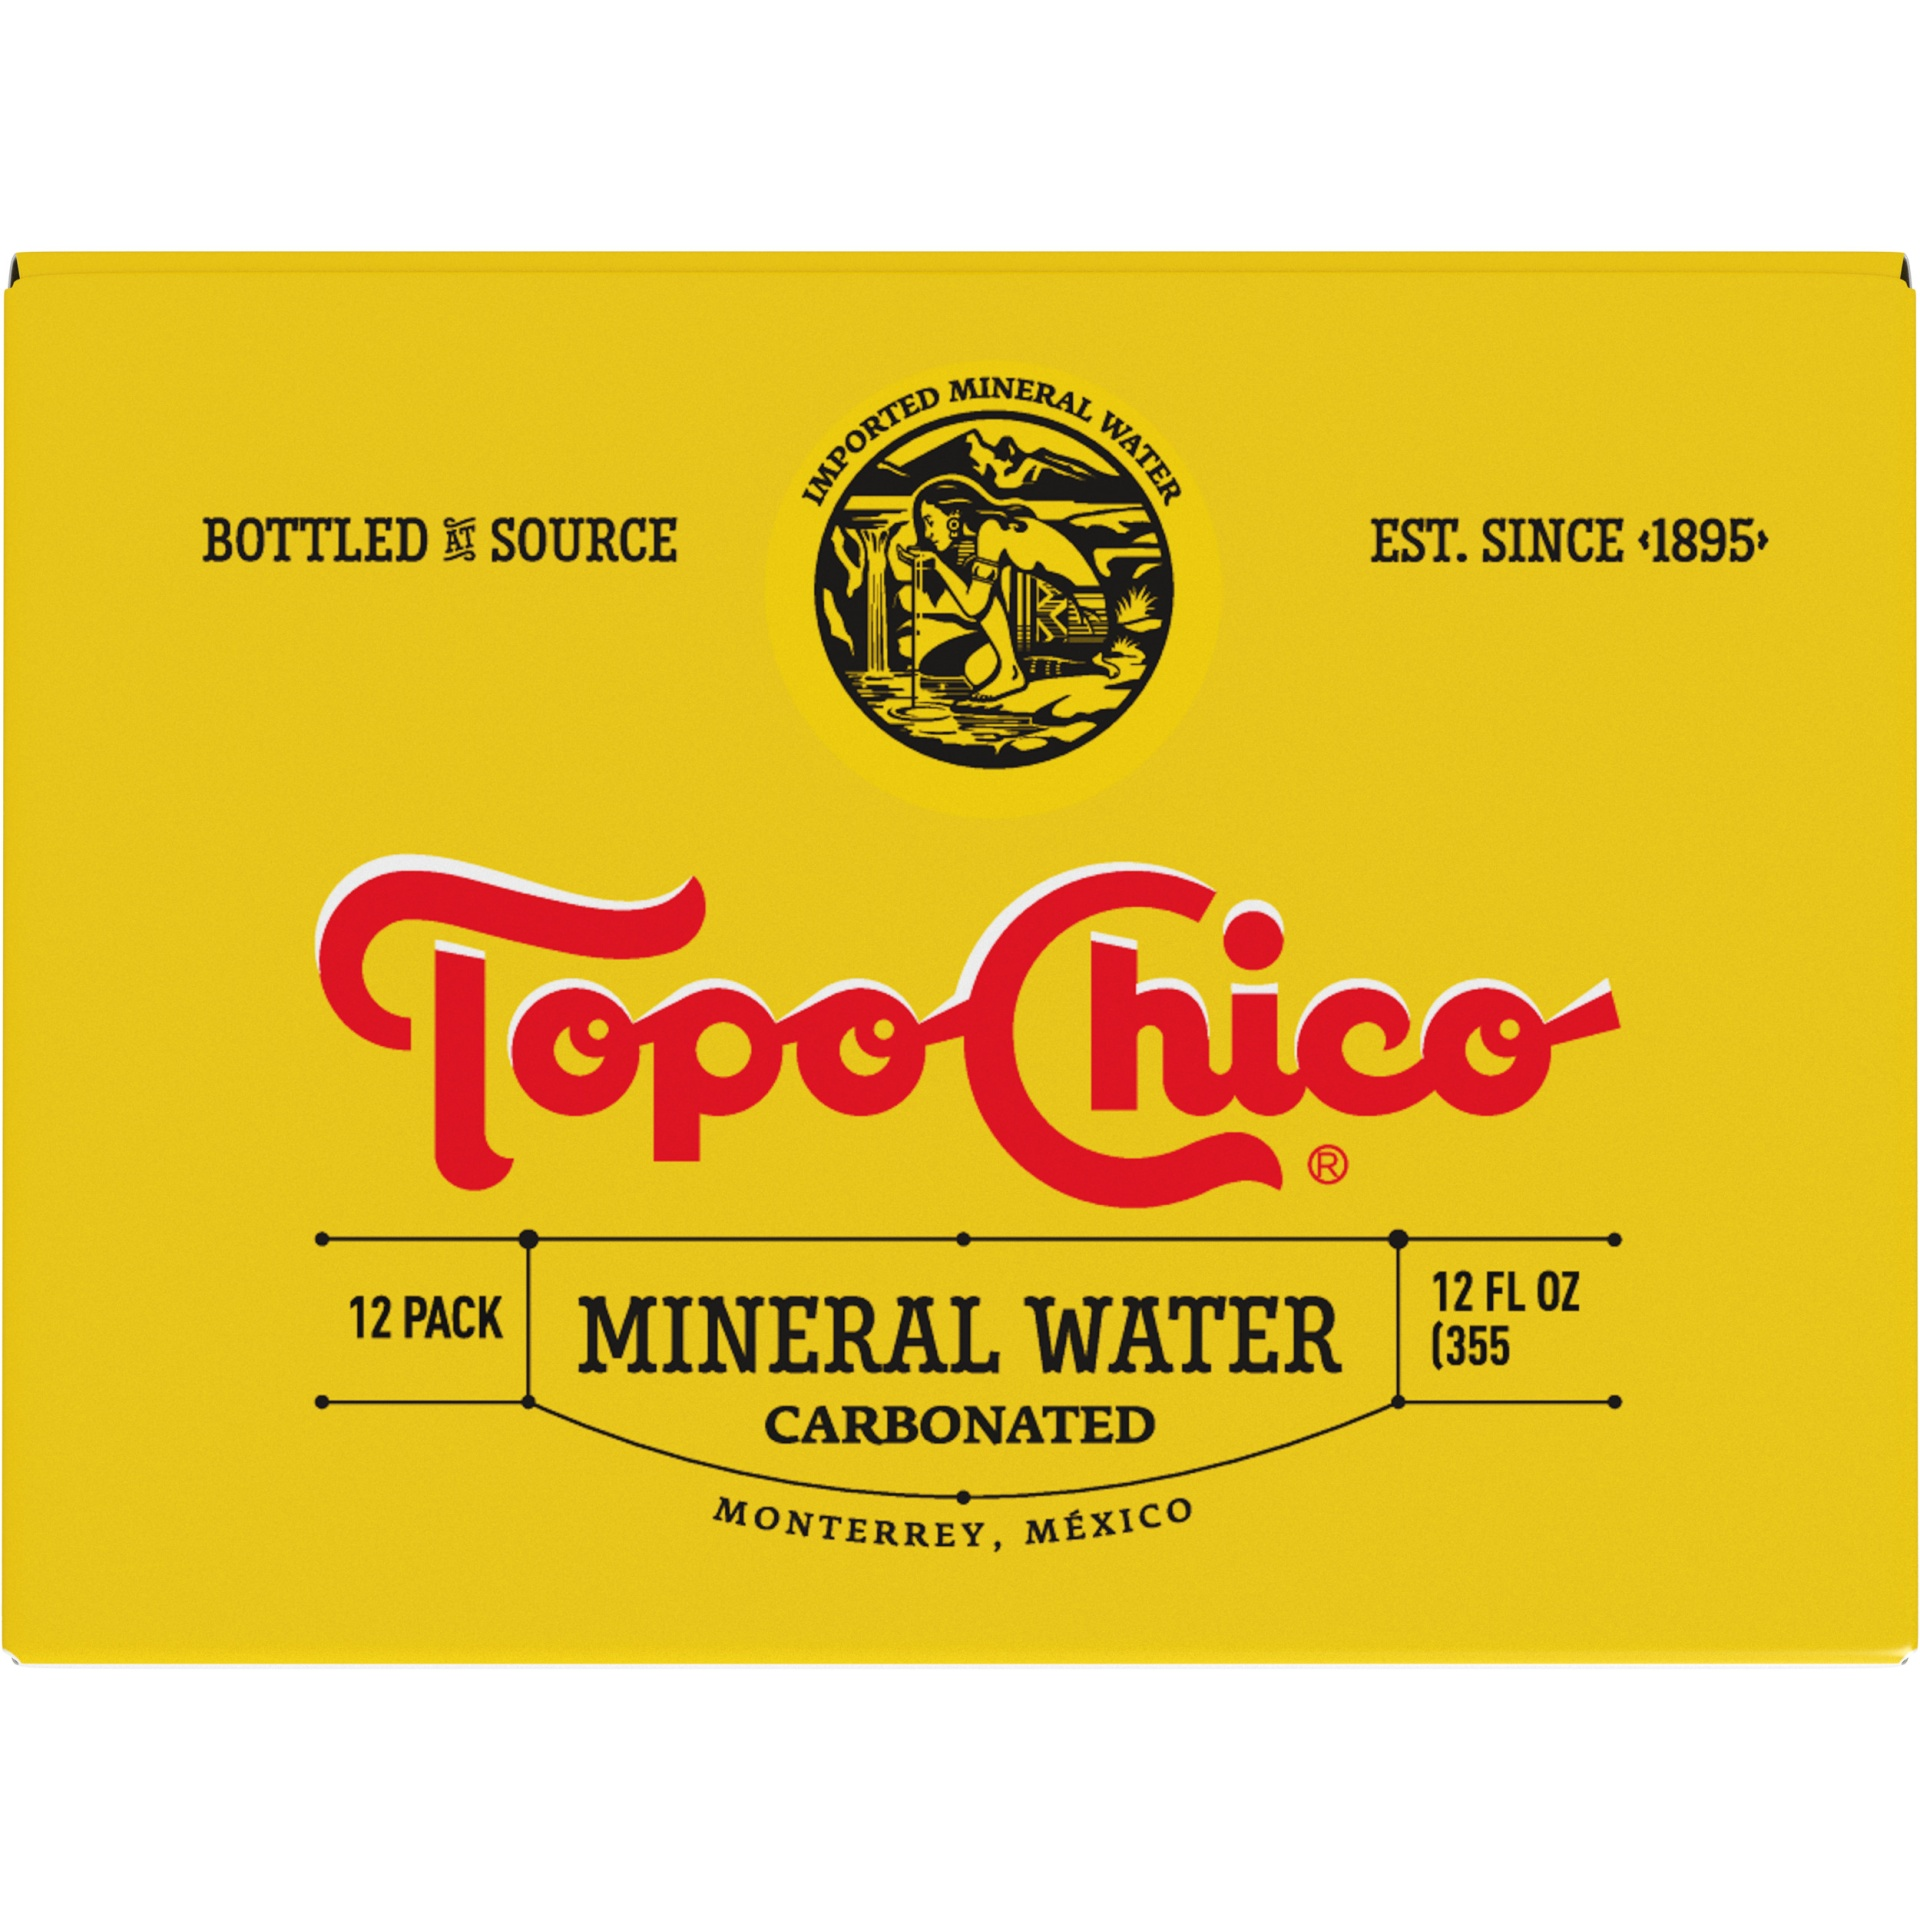 slide 6 of 7, Topo Chico Mineral Water,